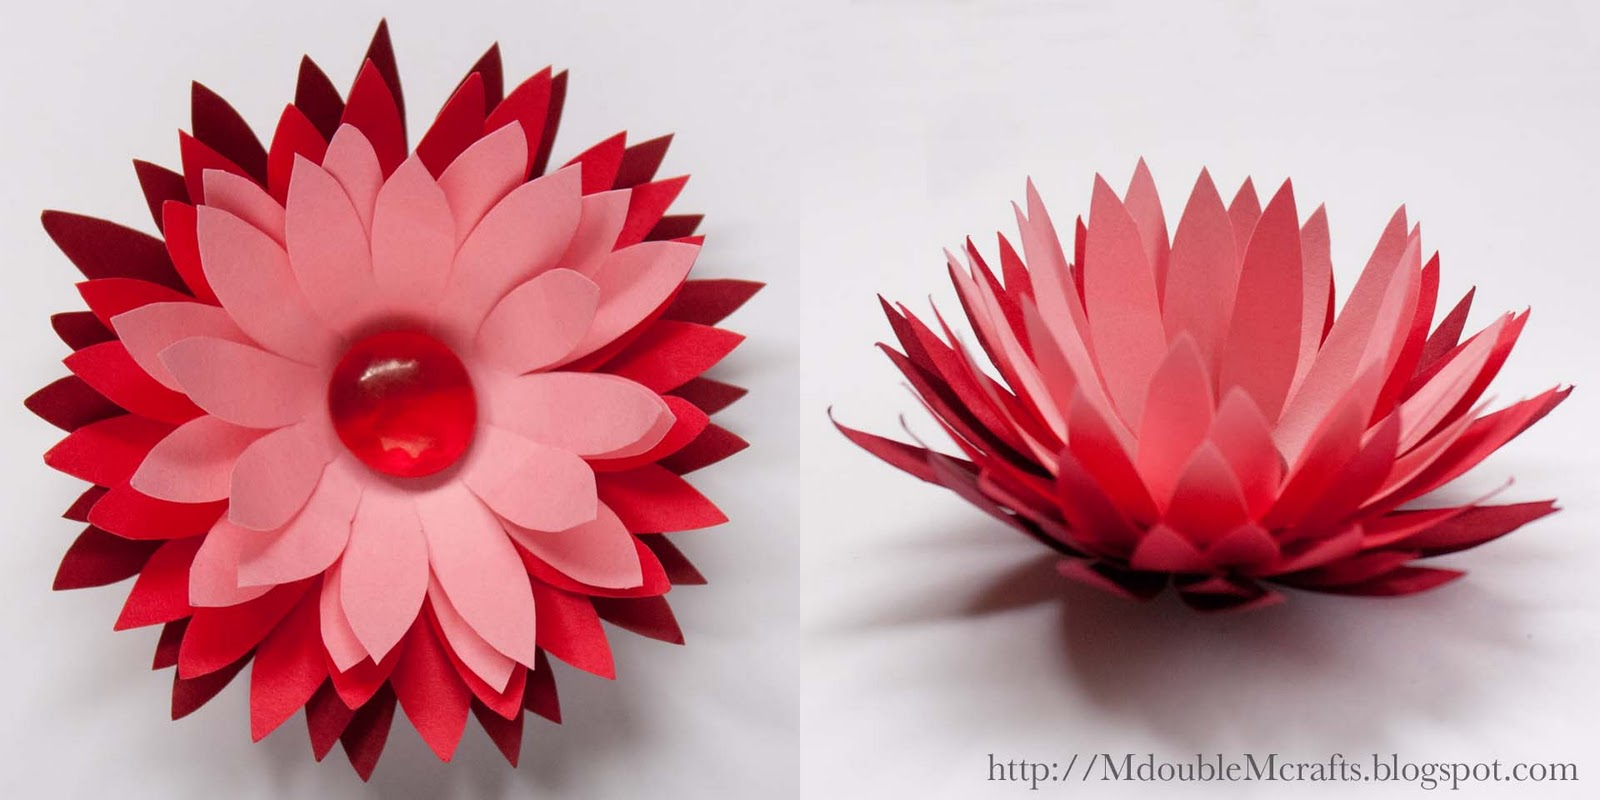 M double m ombre water lily paper flower tutorial ombre water lily paper flower tutorial izmirmasajfo Gallery